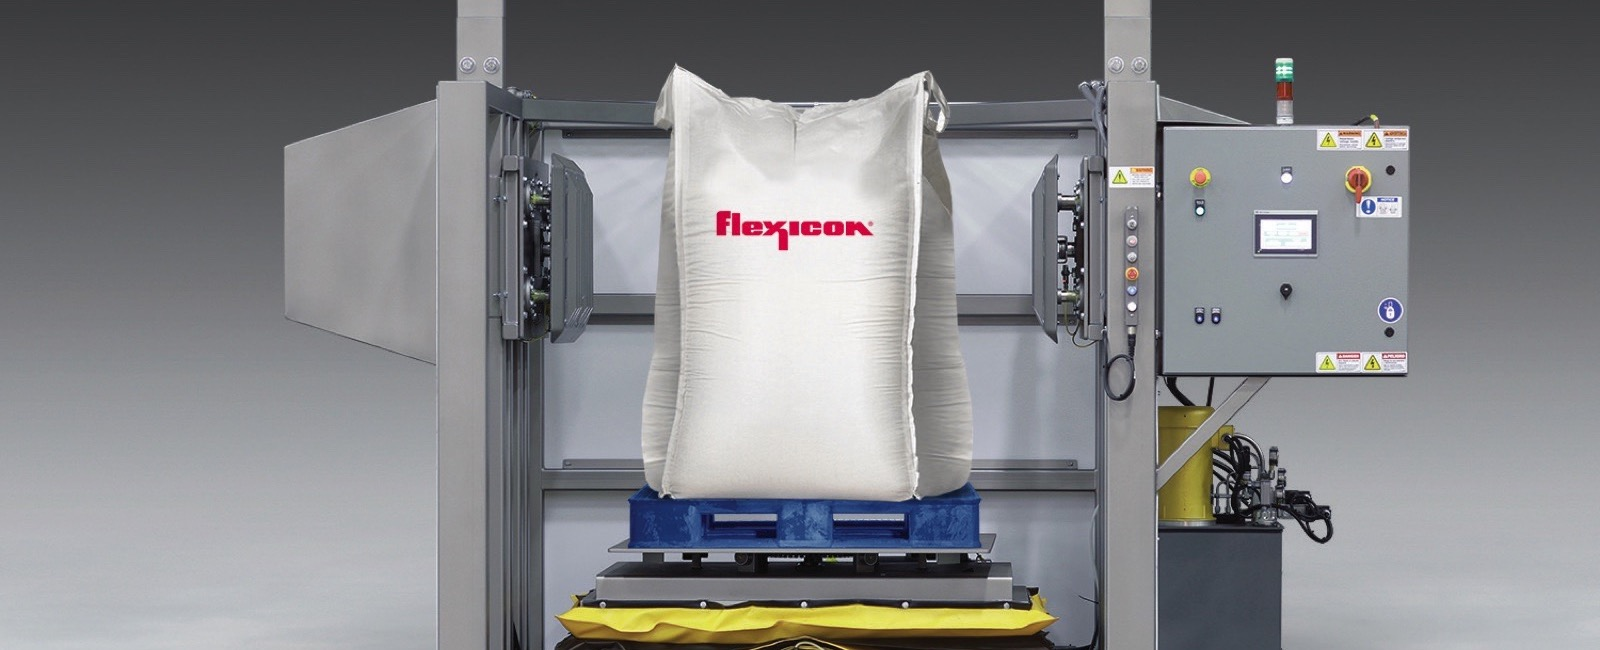 Flexicon: Bulk Bag Conditioner has Laser Safety Curtain